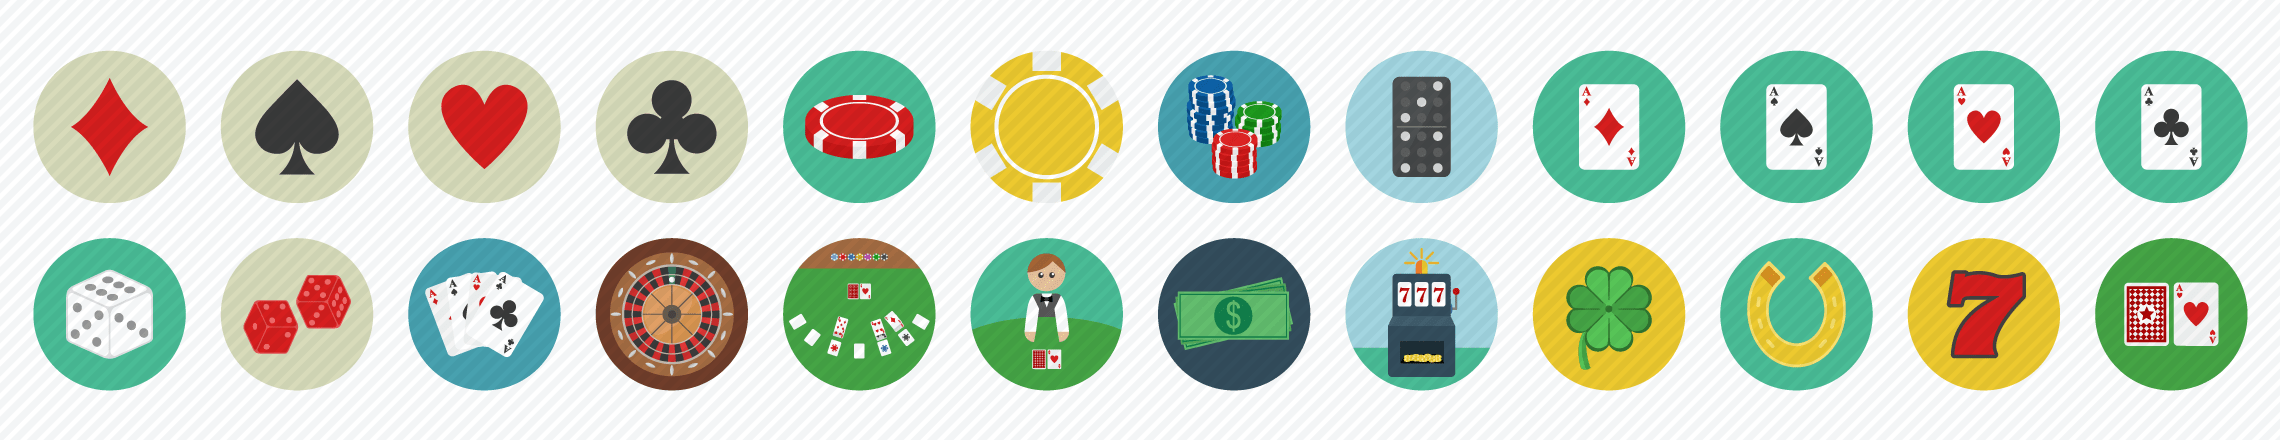 Gambling Casino Flat Icons